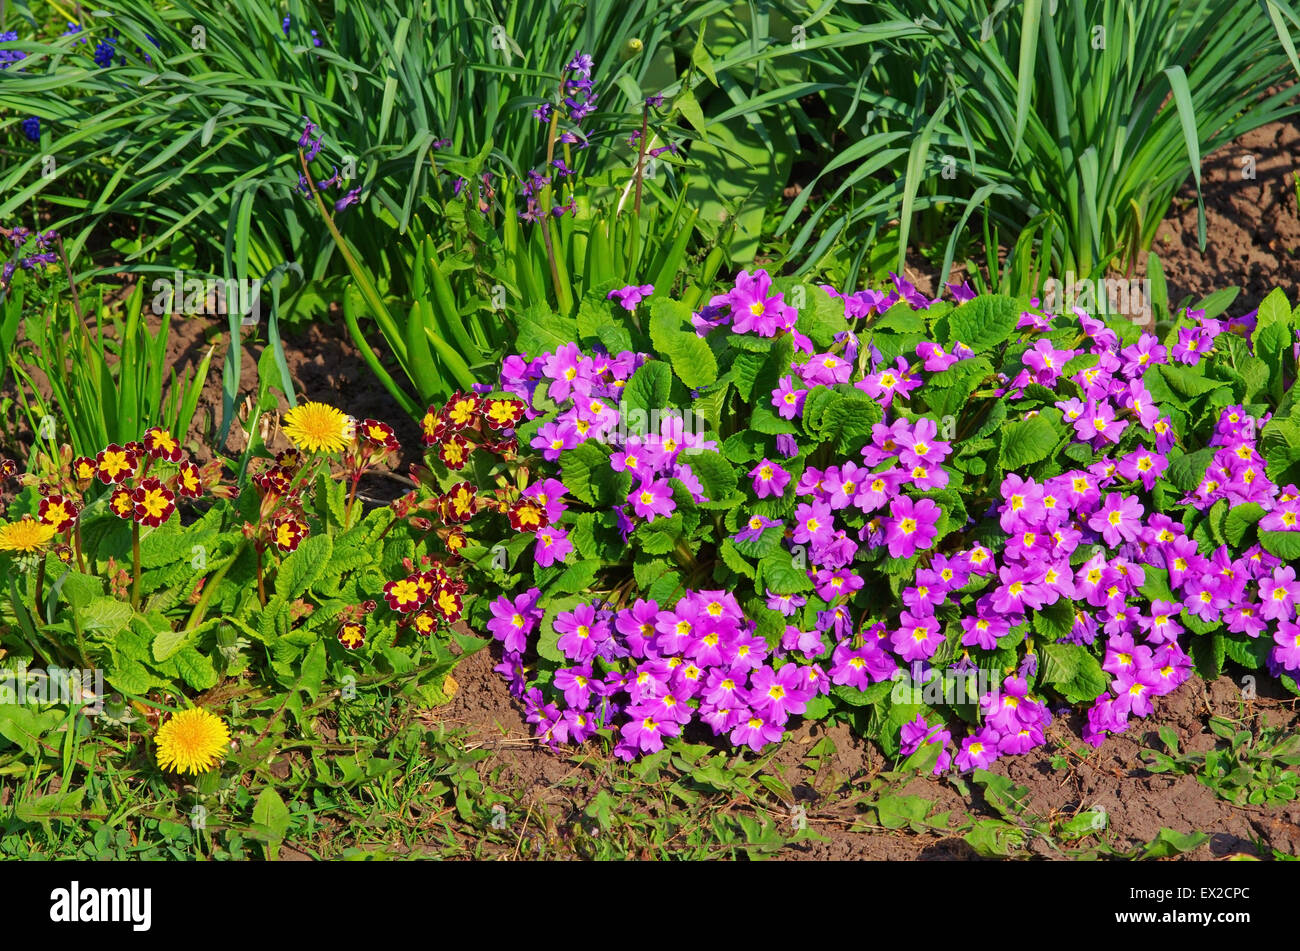 Close image of the lilla flowers in the garden - Stock Image